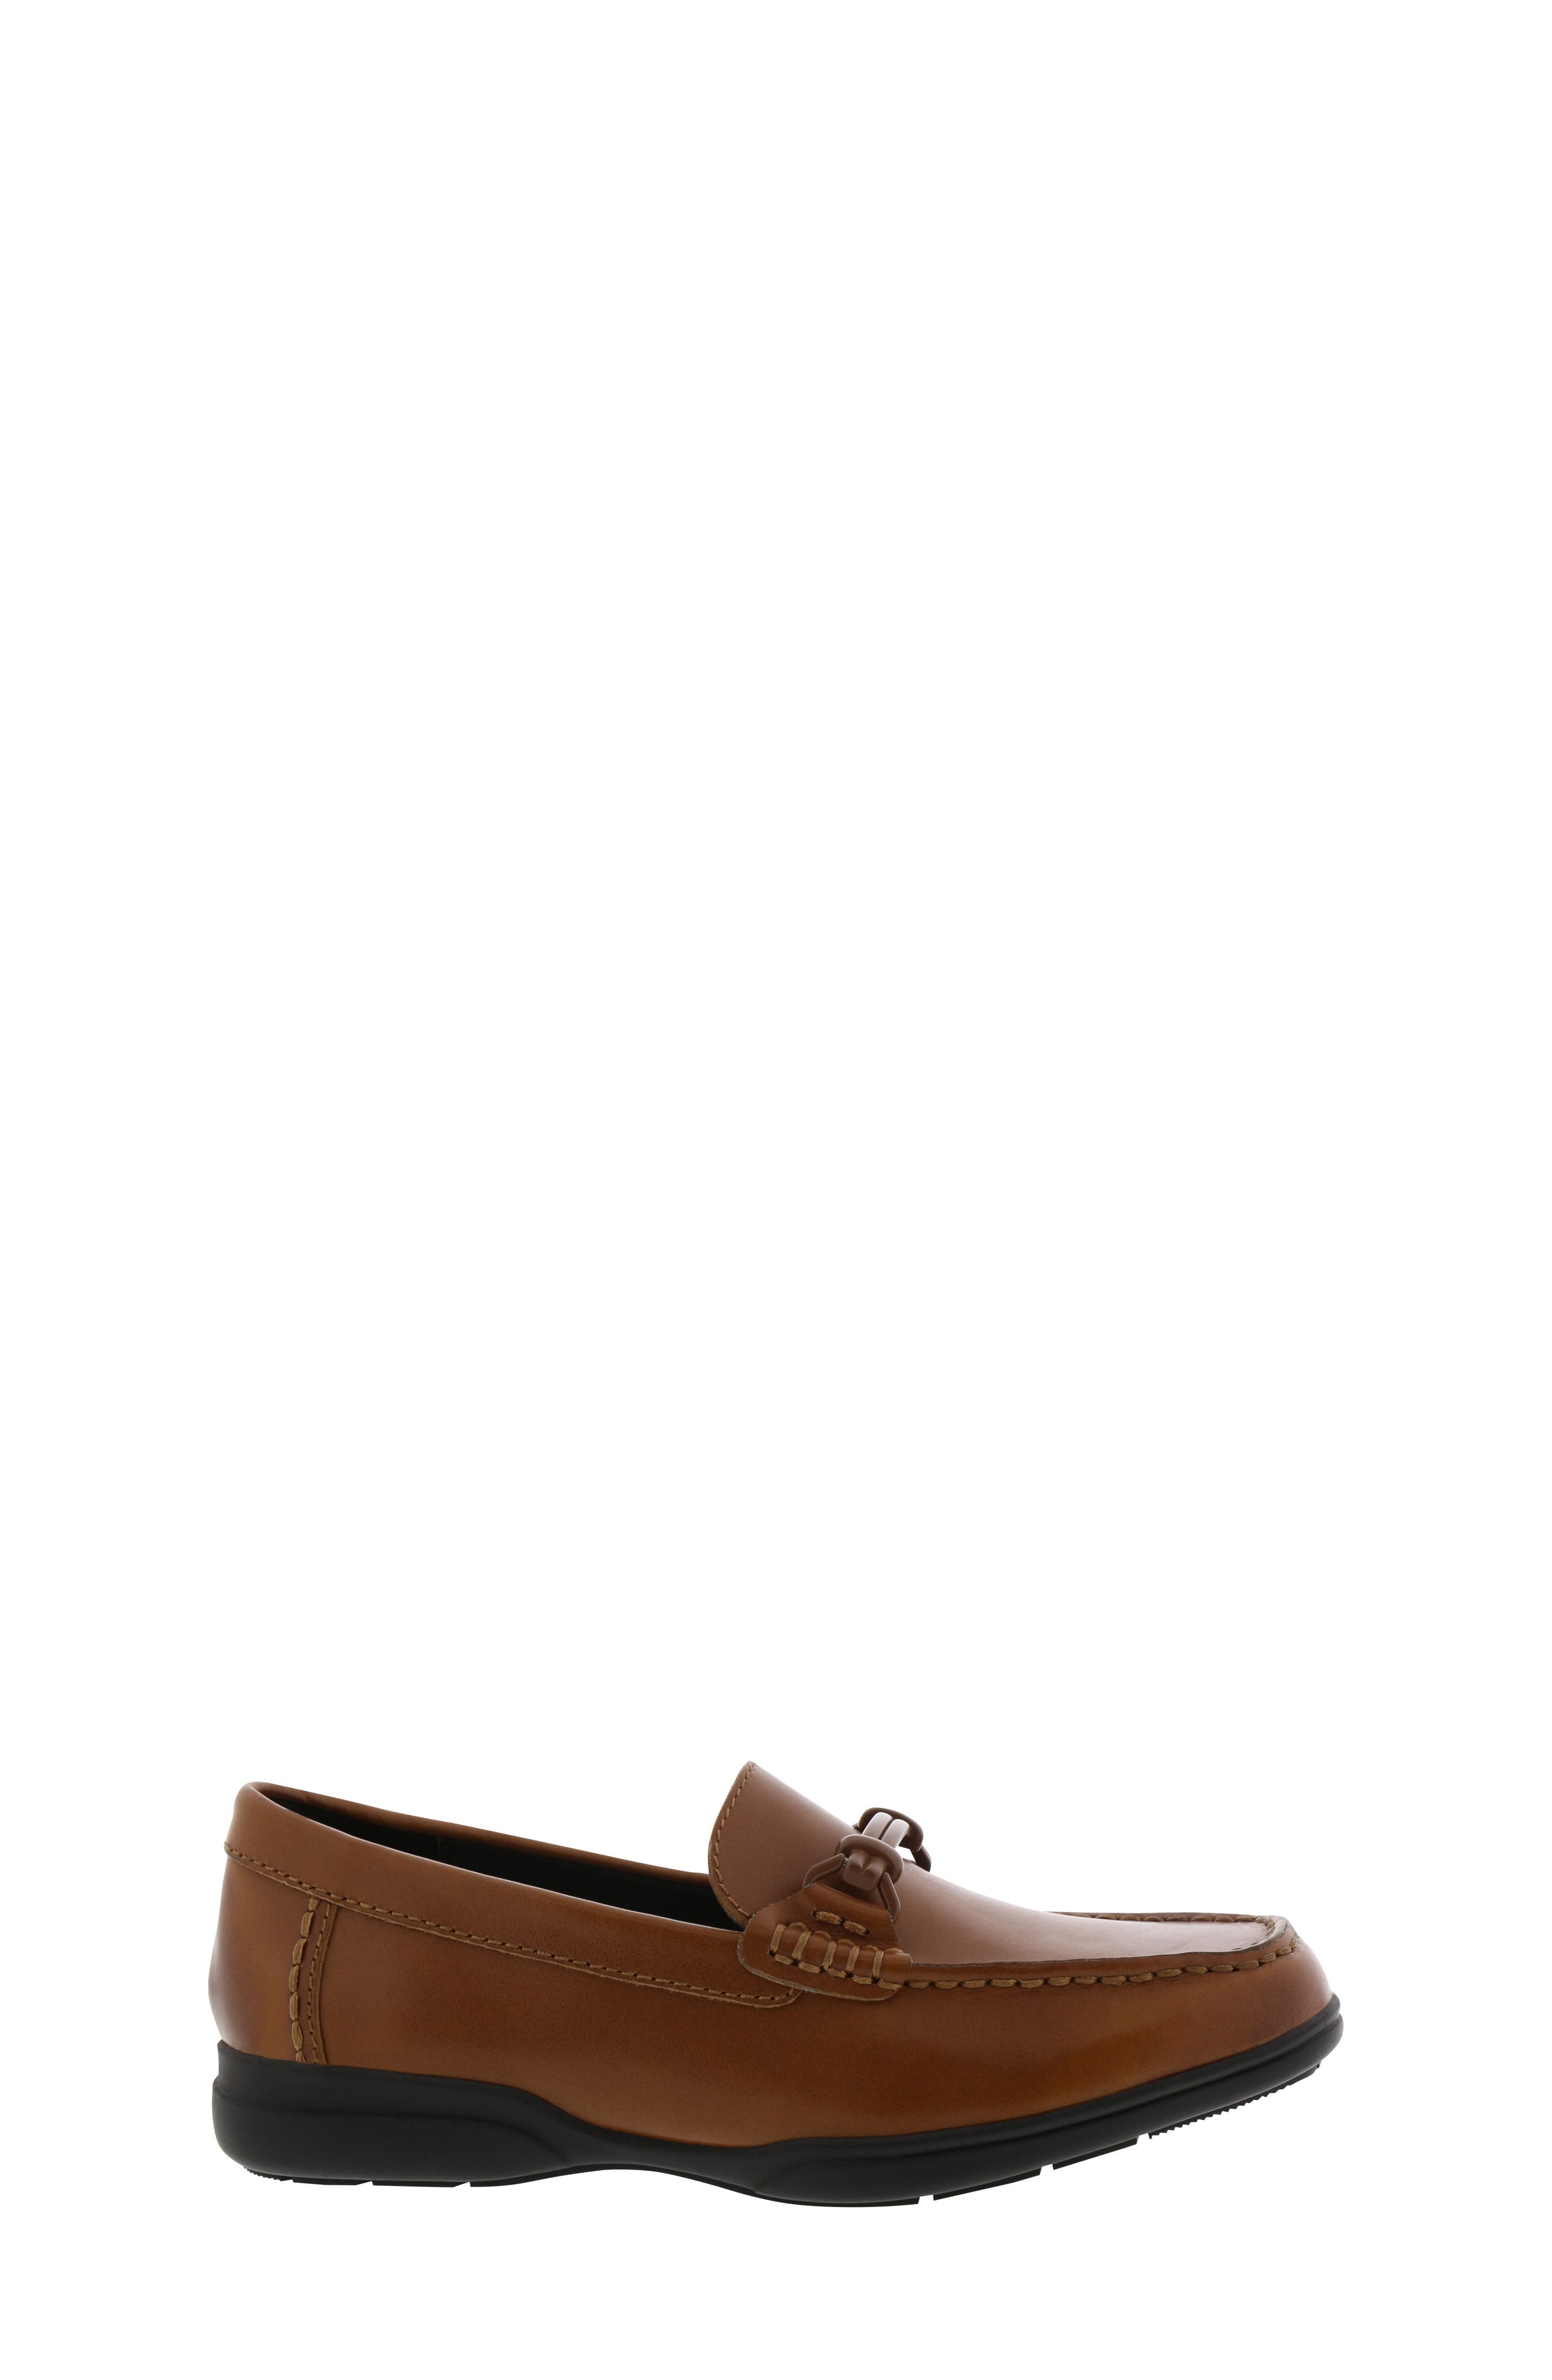 Joe Mason Driving Loafer,                             Alternate thumbnail 3, color,                             BURNT WHISKEY